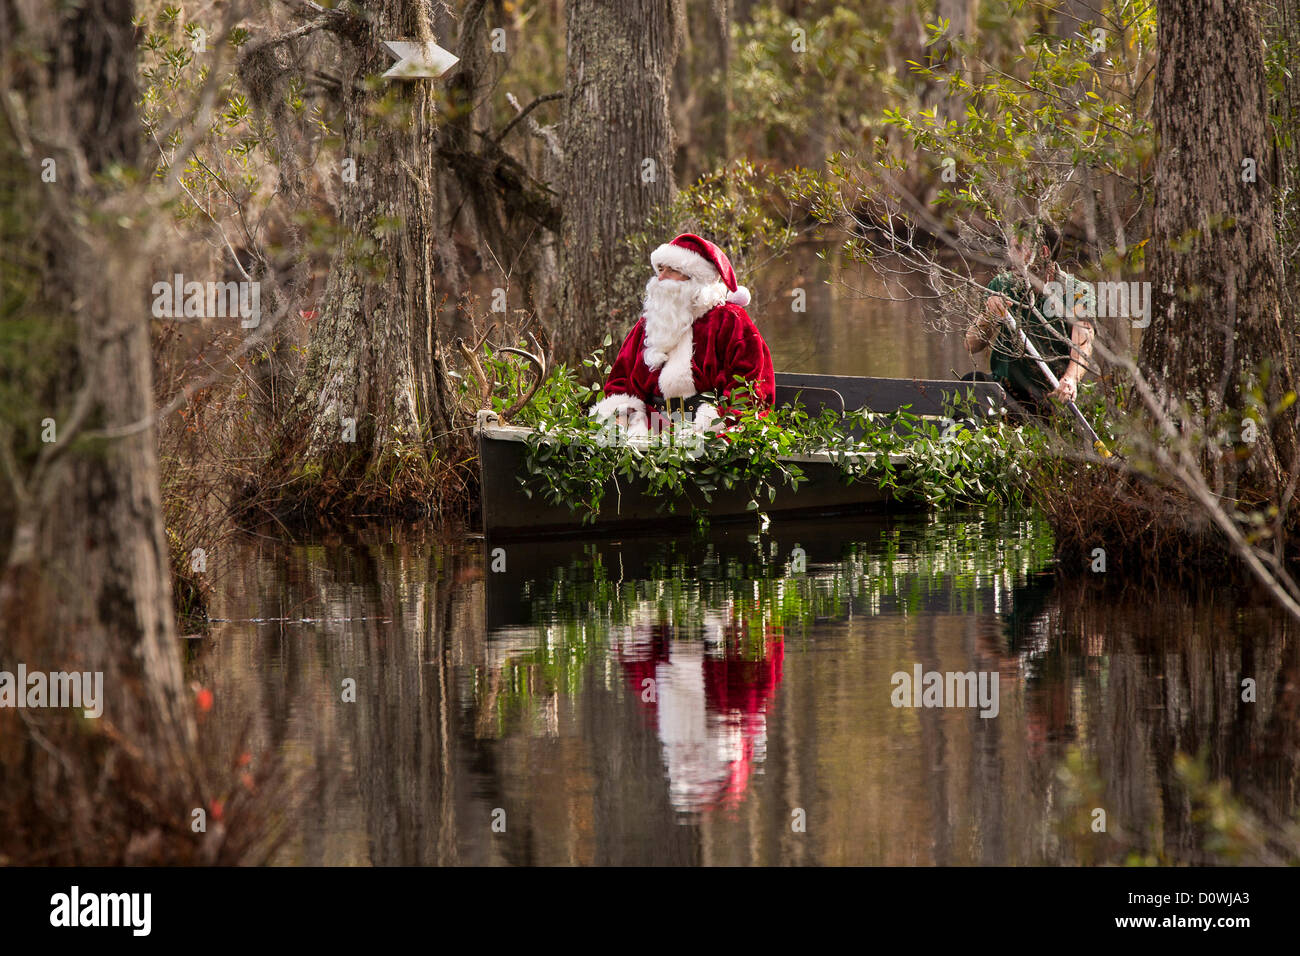 Charleston, USA. 1st December 2012. Santa Claus arrives by swamp boat at Cypress Gardens Swamp December 1, 2012 Stock Photo